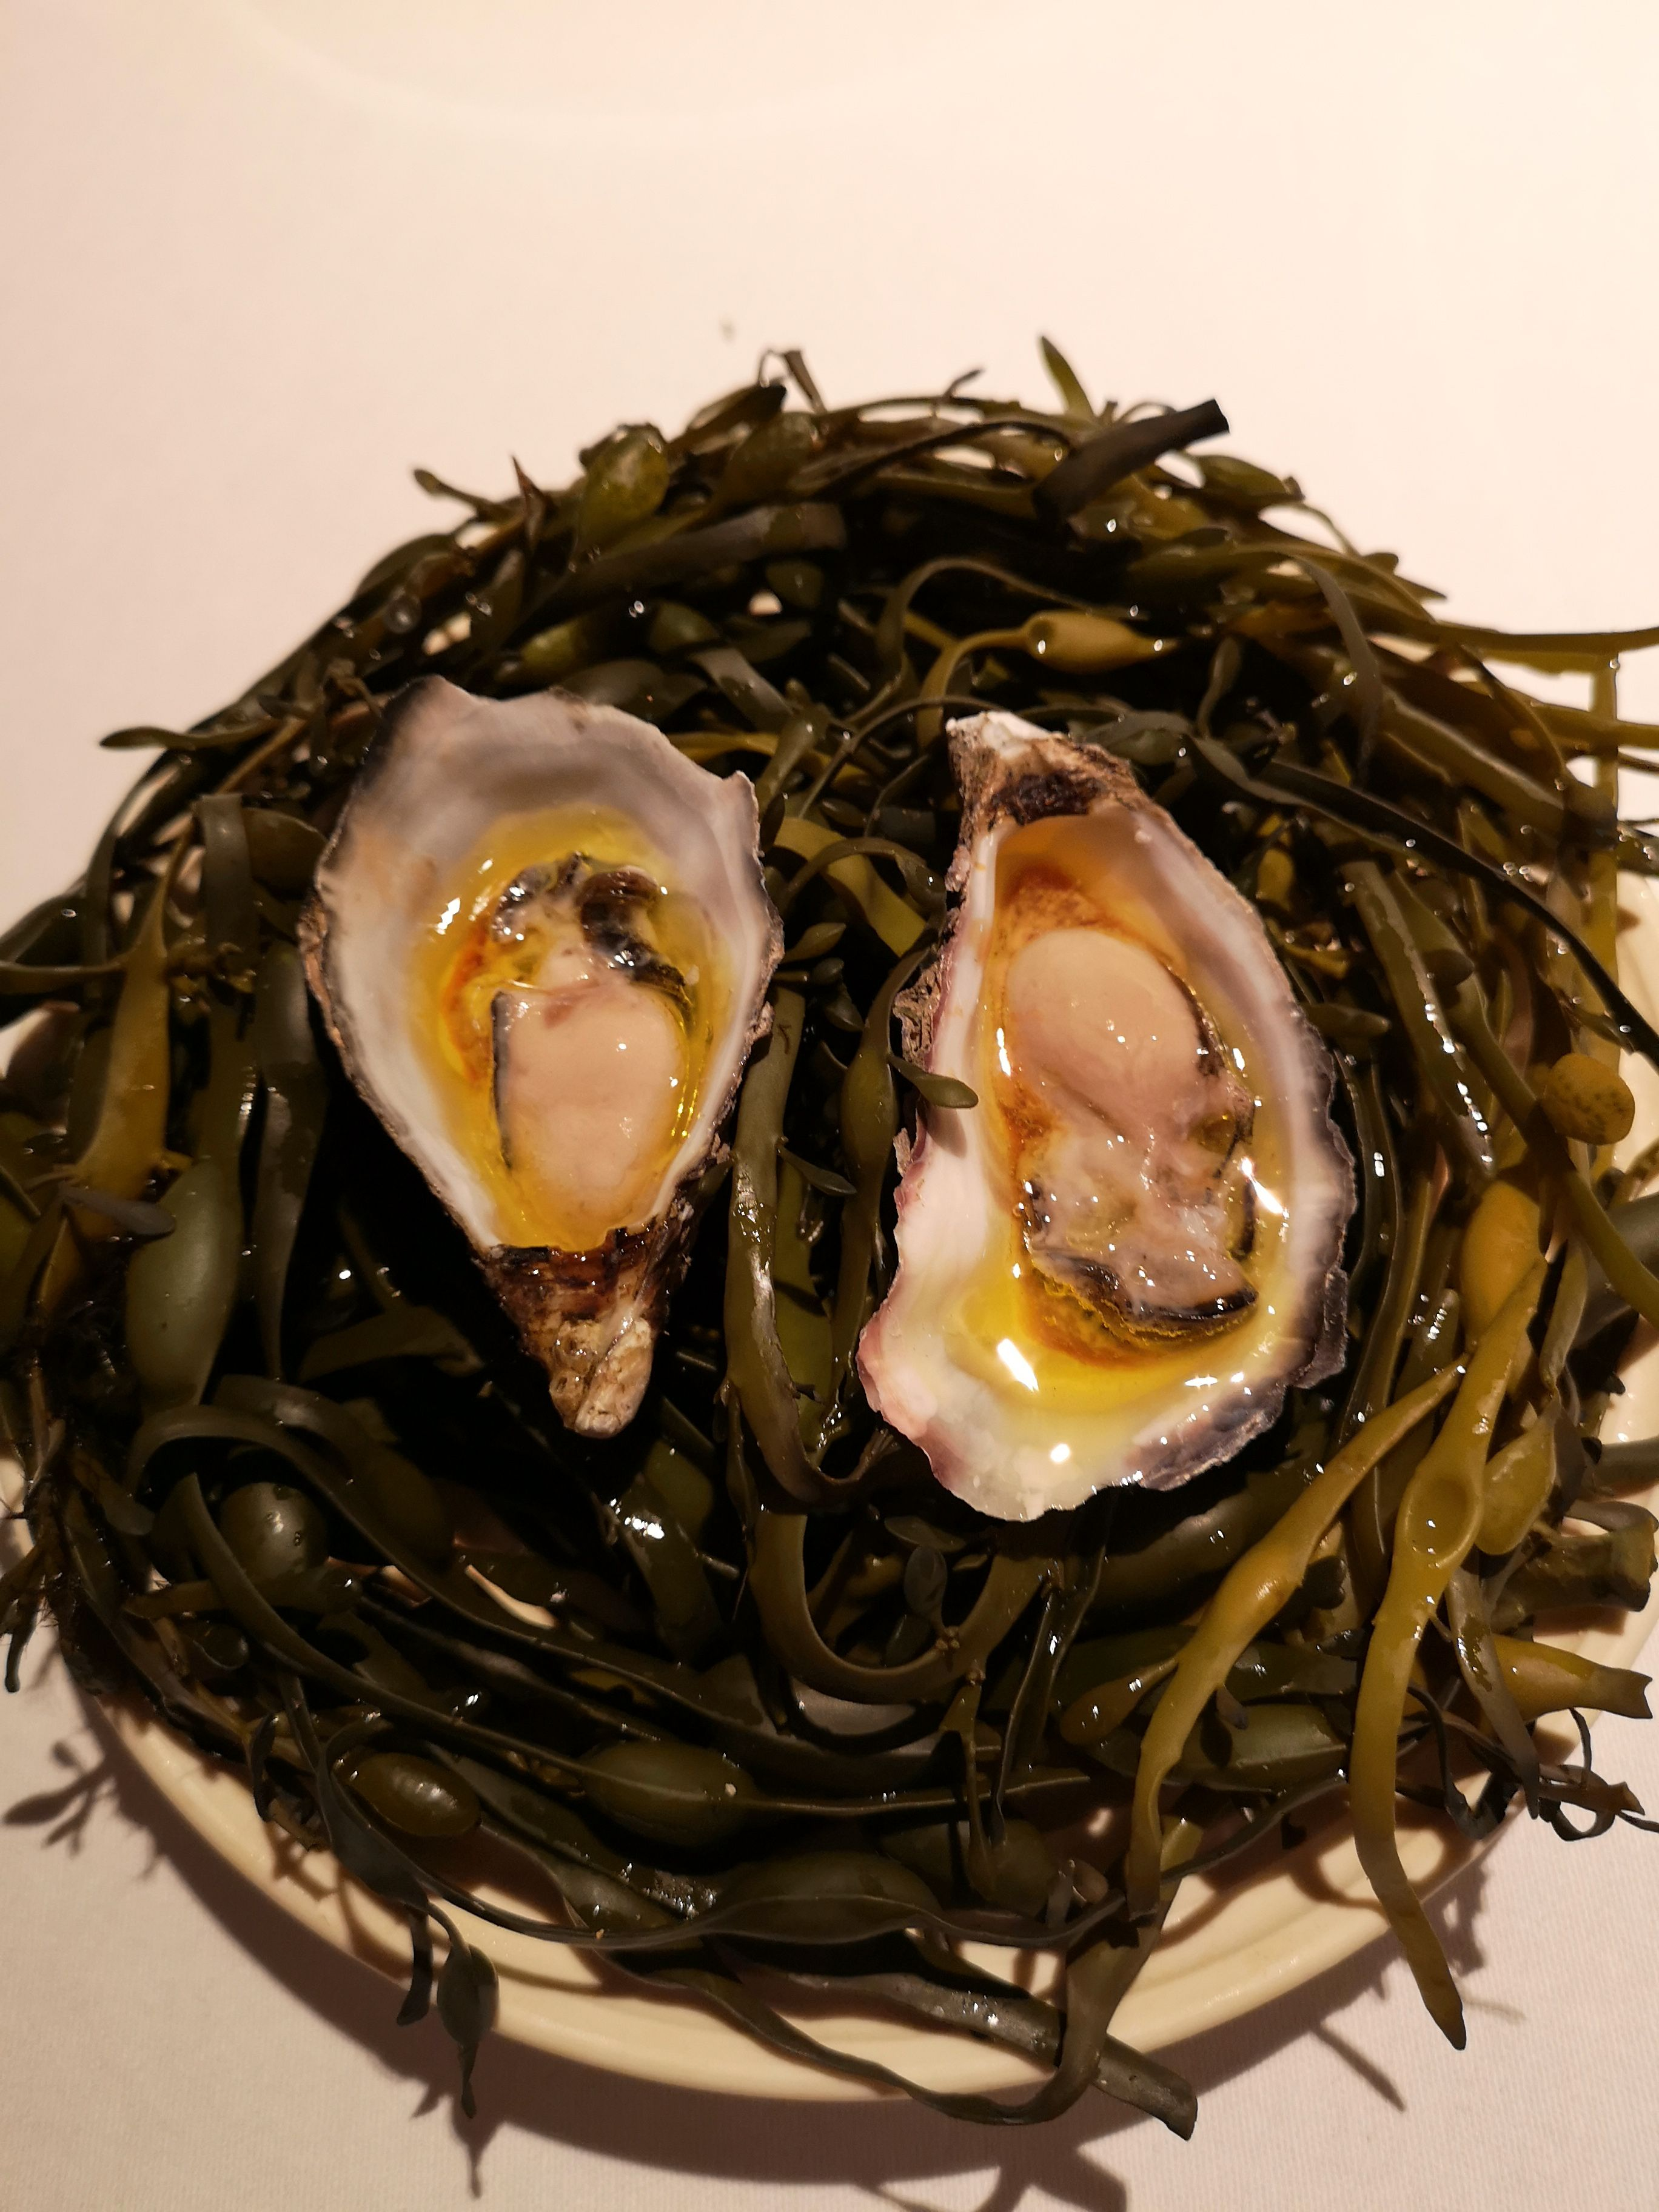 Flaggy Shore oyster poached in roasted koji butter with Highbank Orchard apple balsamic